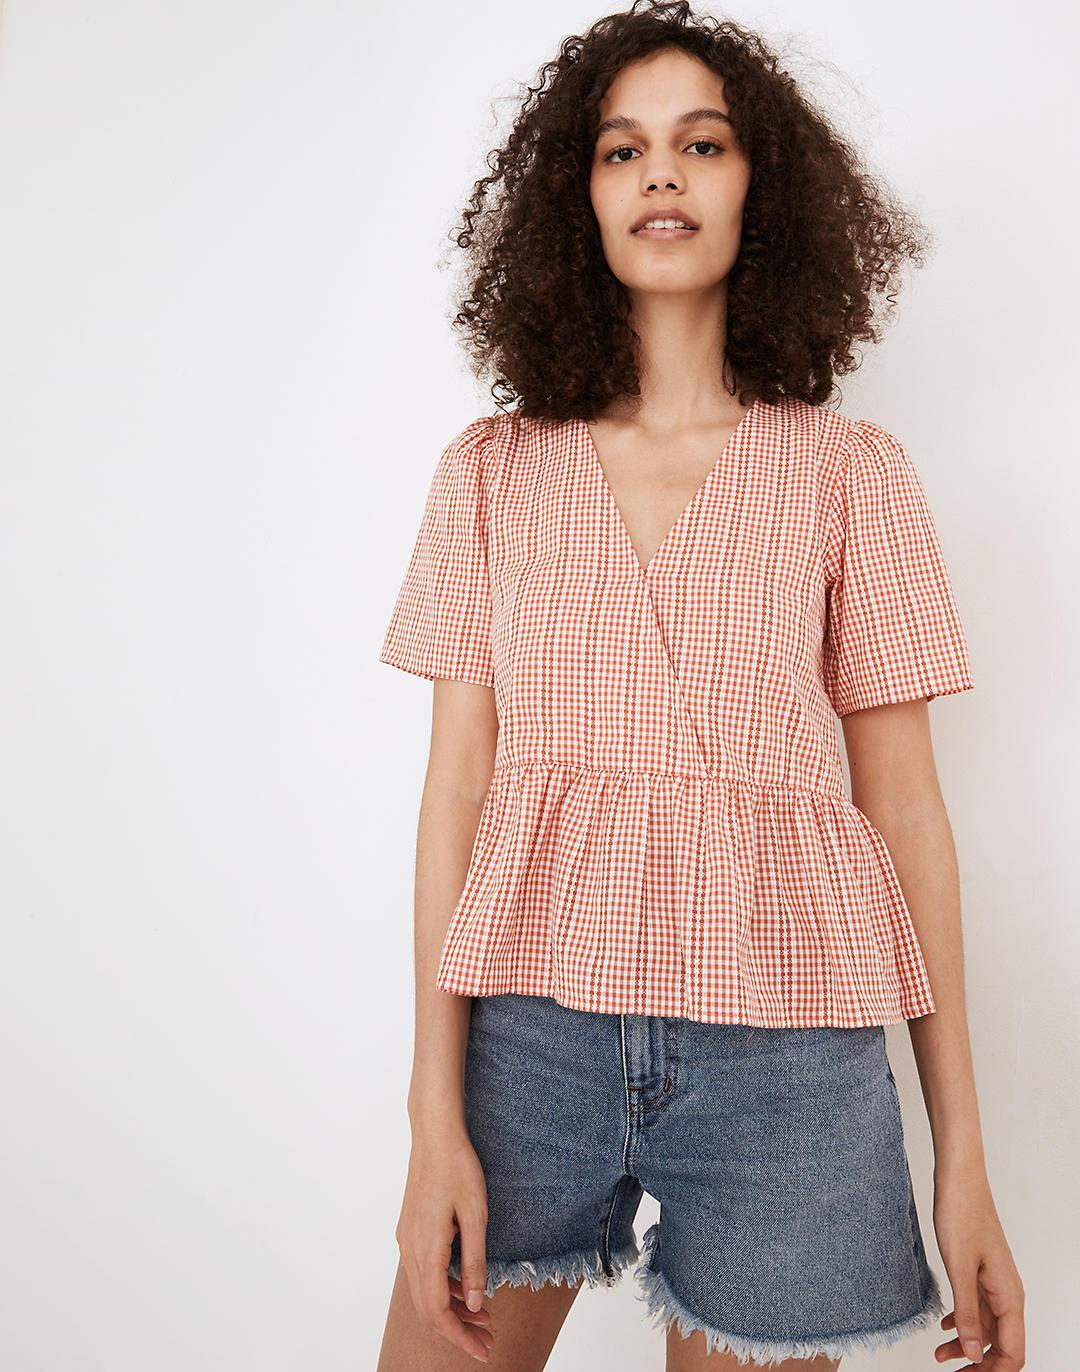 Crossover Peplum Top in Textured Gingham Check